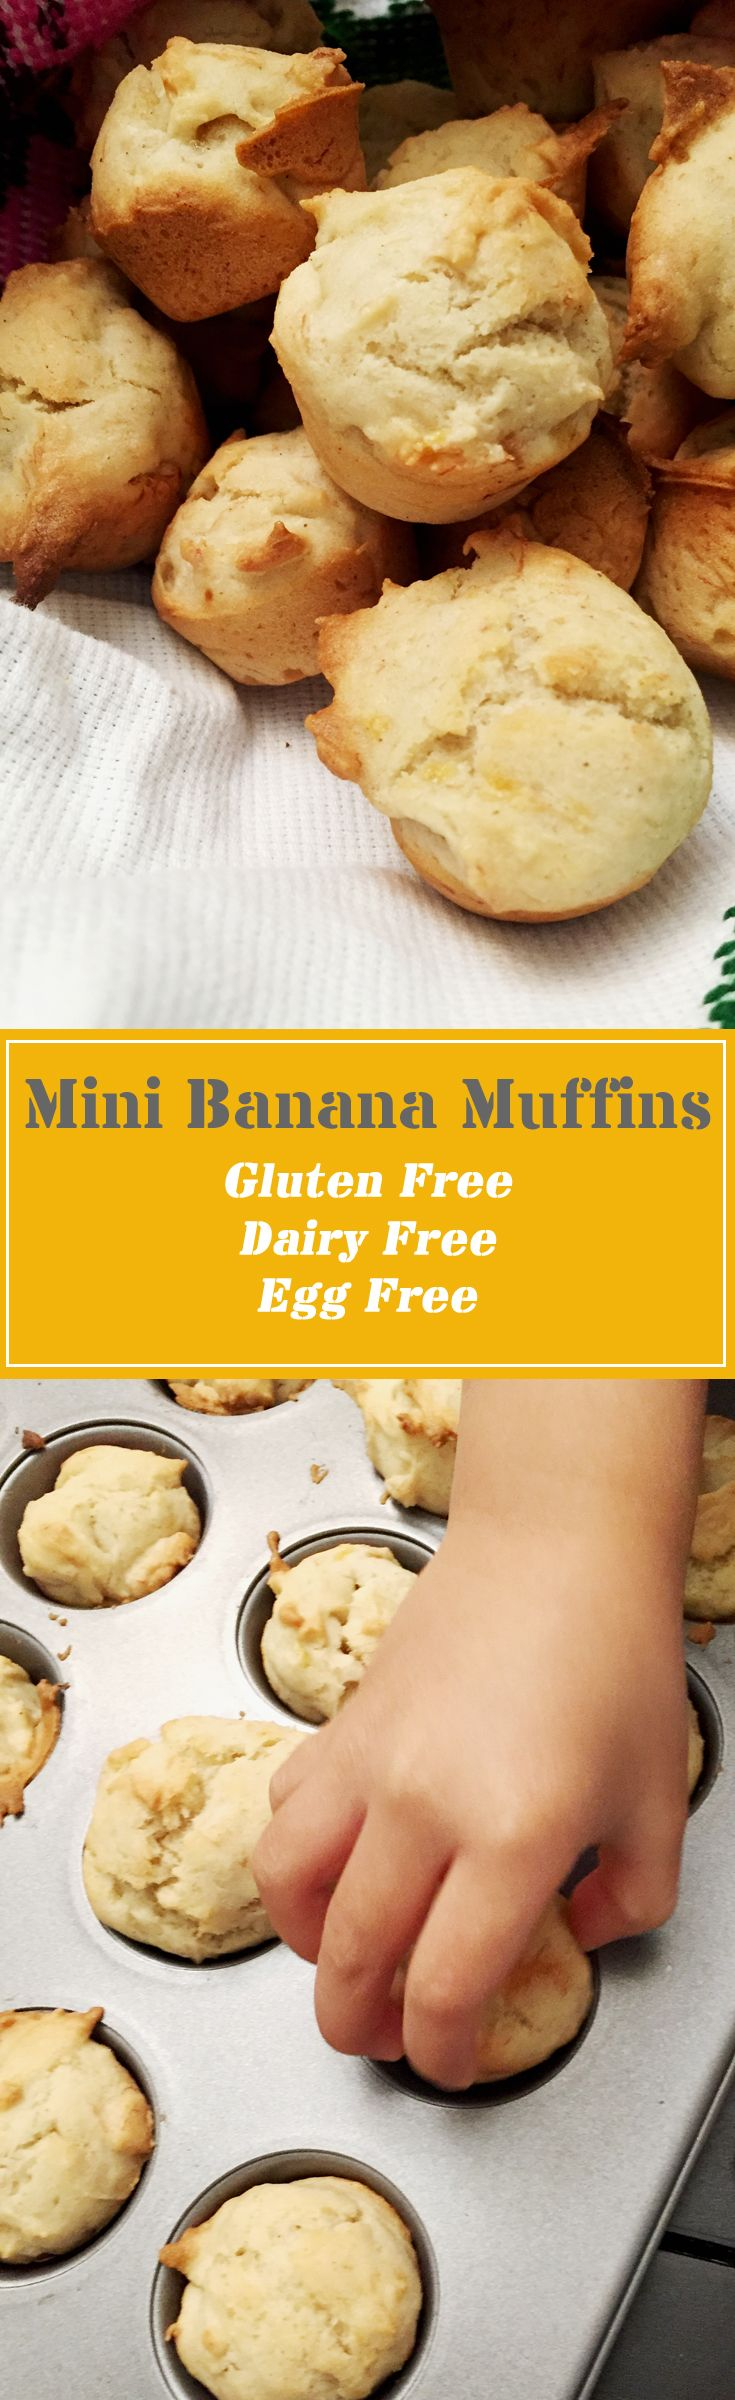 Gluten Free Vegan Mini Banana Muffins - Made with a 3 year old - With Extra Love and Without Gluten